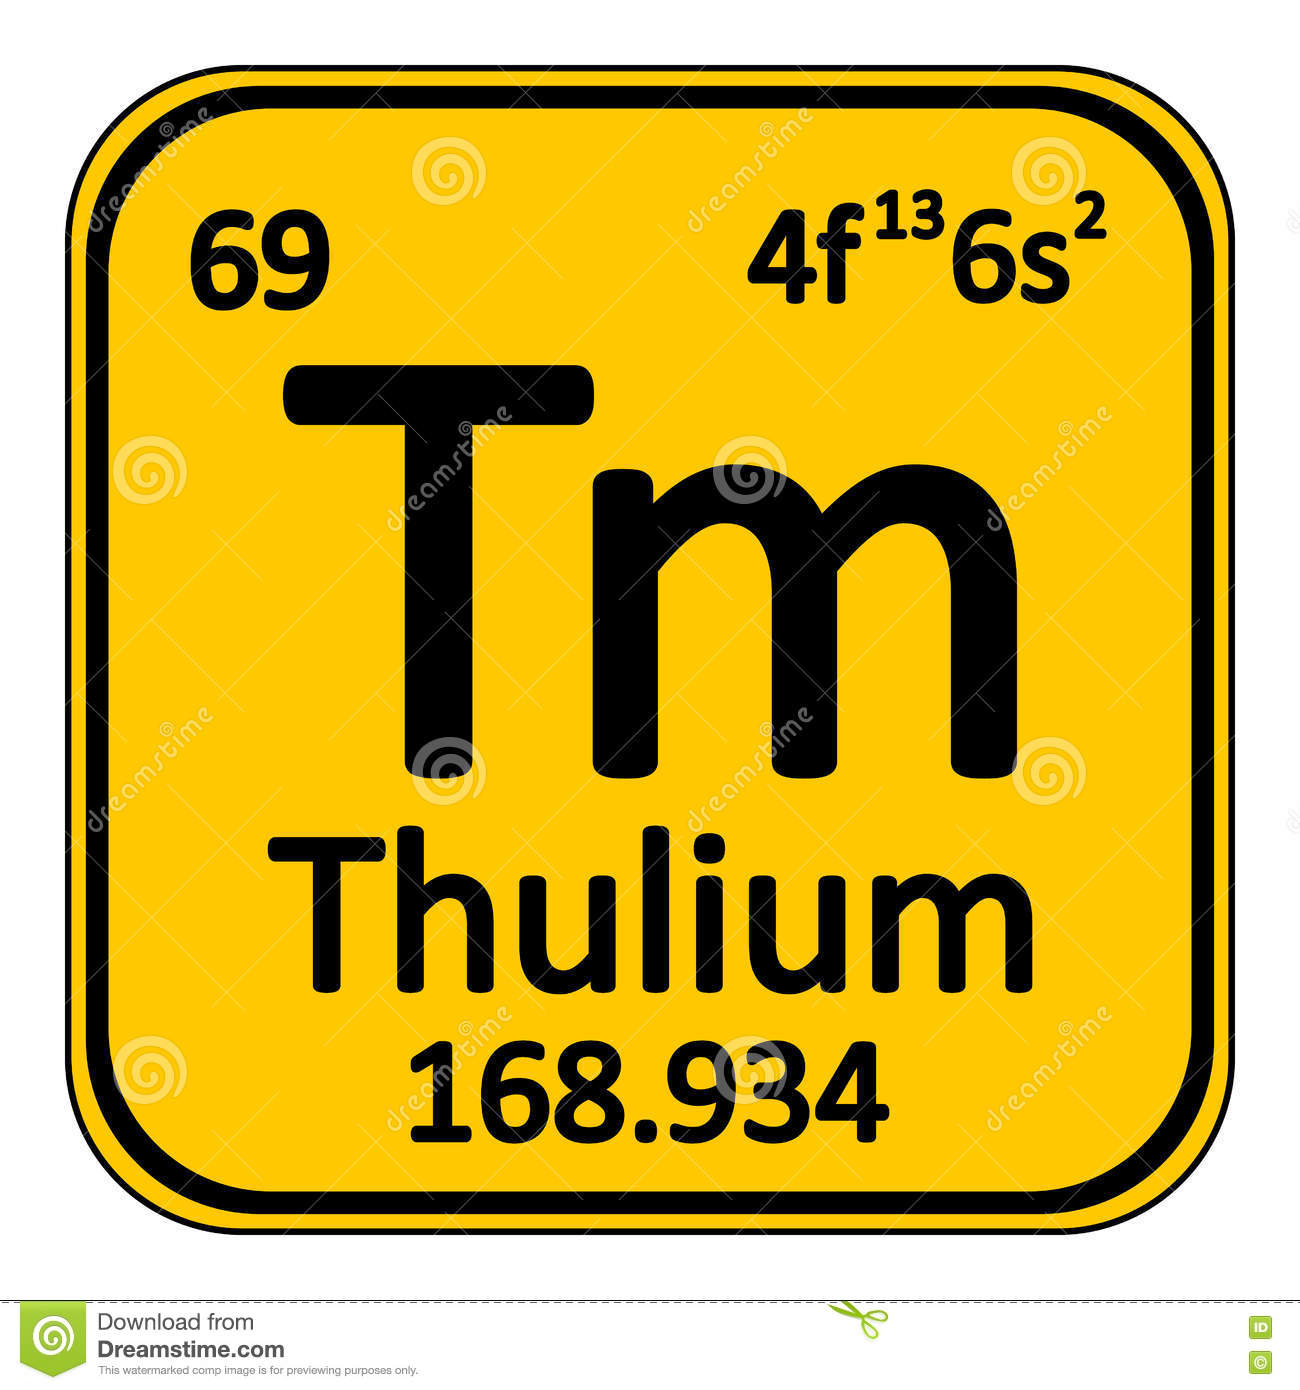 Periodic table element thulium icon stock illustration image periodic table element thulium icon gamestrikefo Gallery